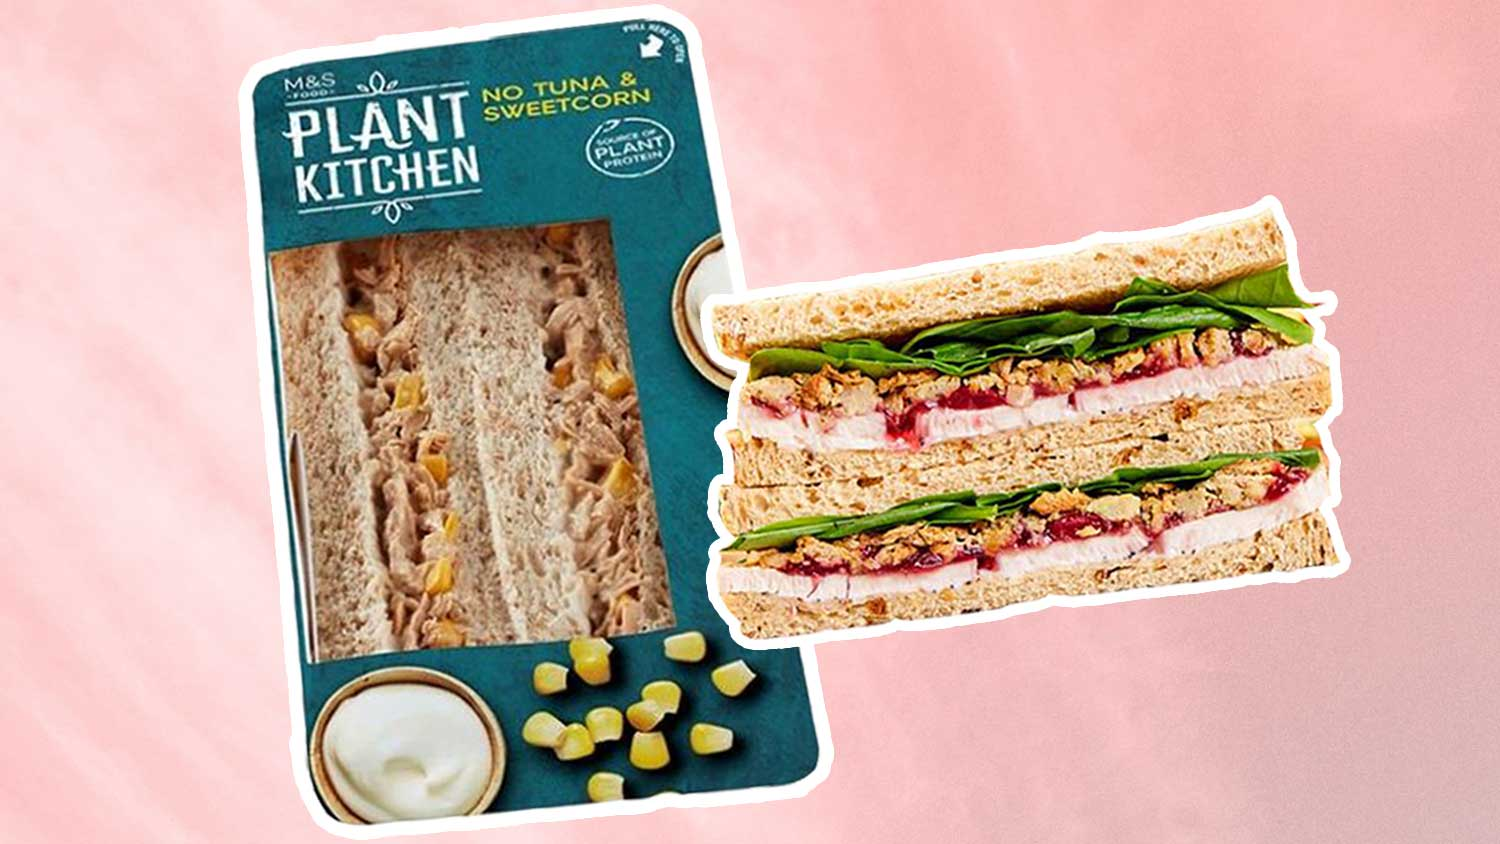 19 Healthy Vegan Sandwiches In the UK to Kickstart Your Year